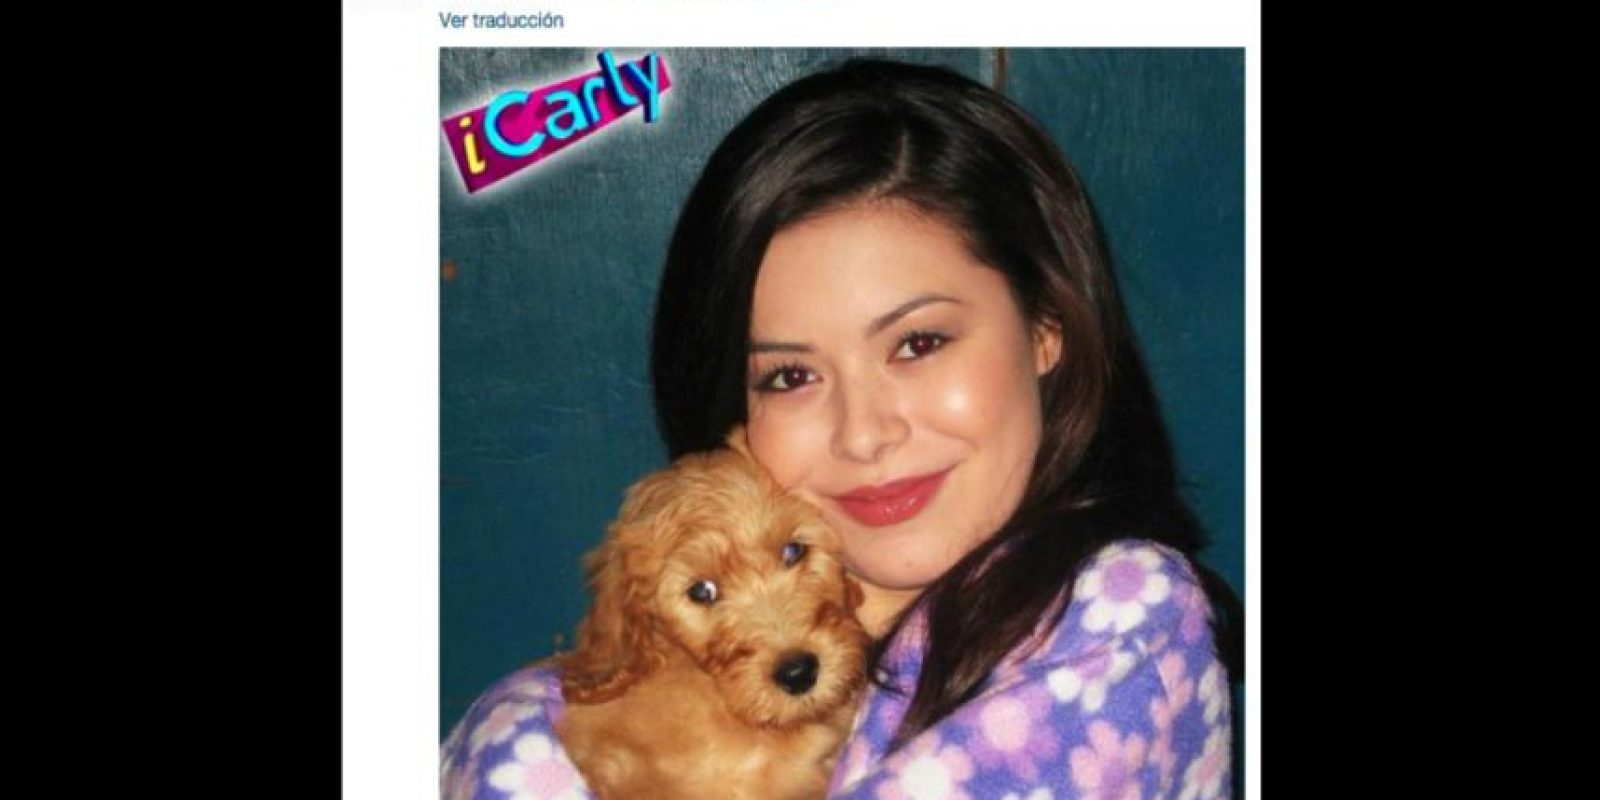 Foto: Twitter/iCarly